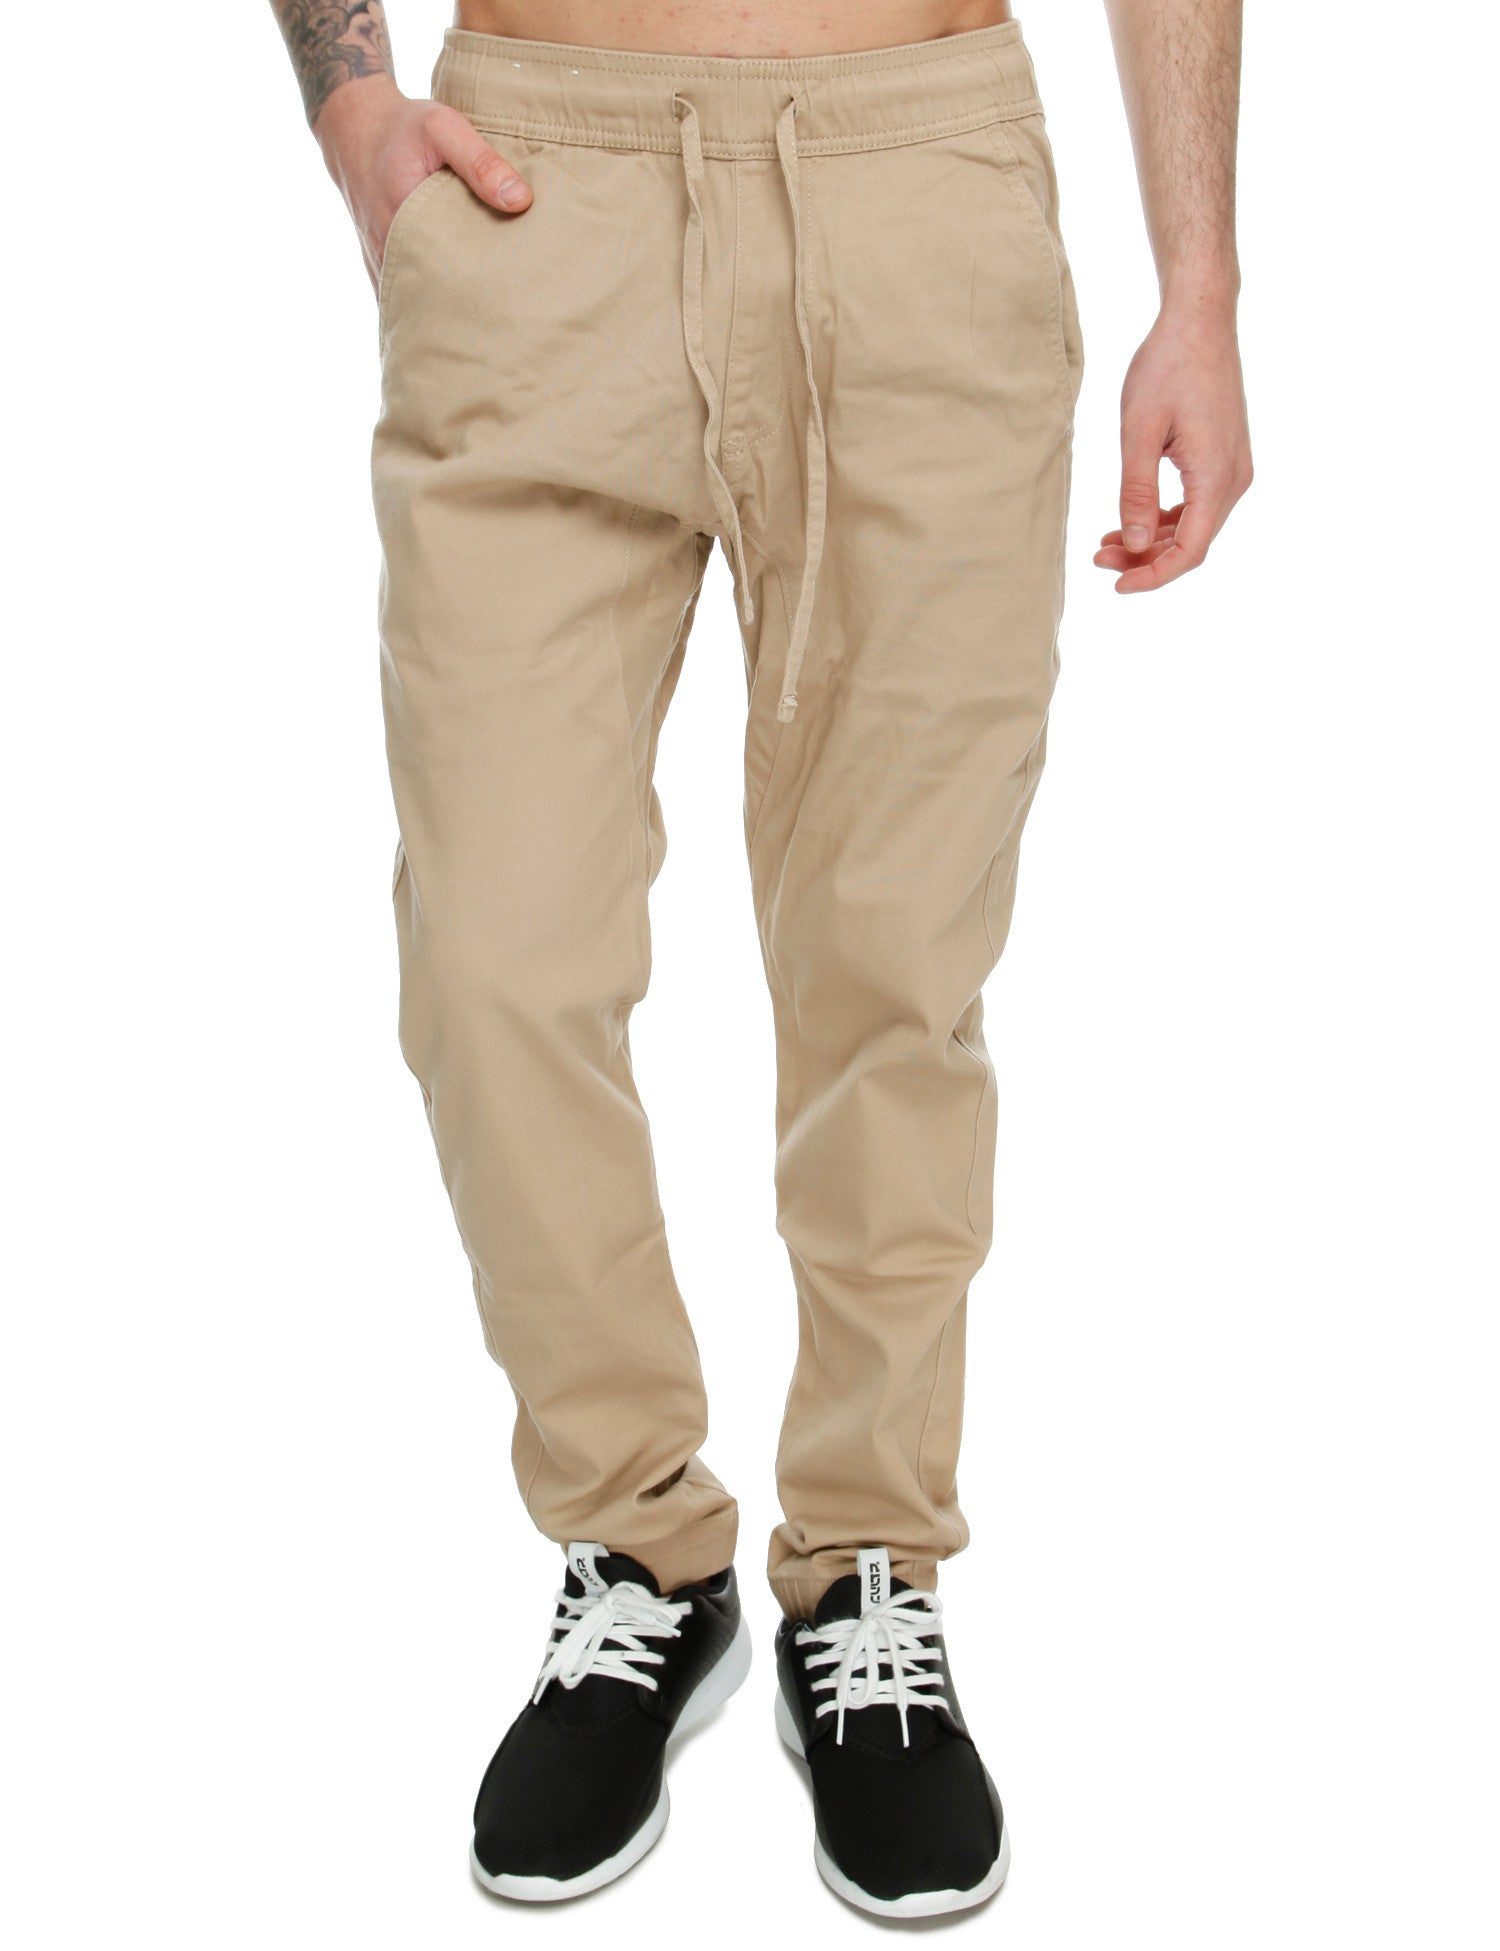 Royal Blue Jog Pants W4JG1009 Khaki Beige